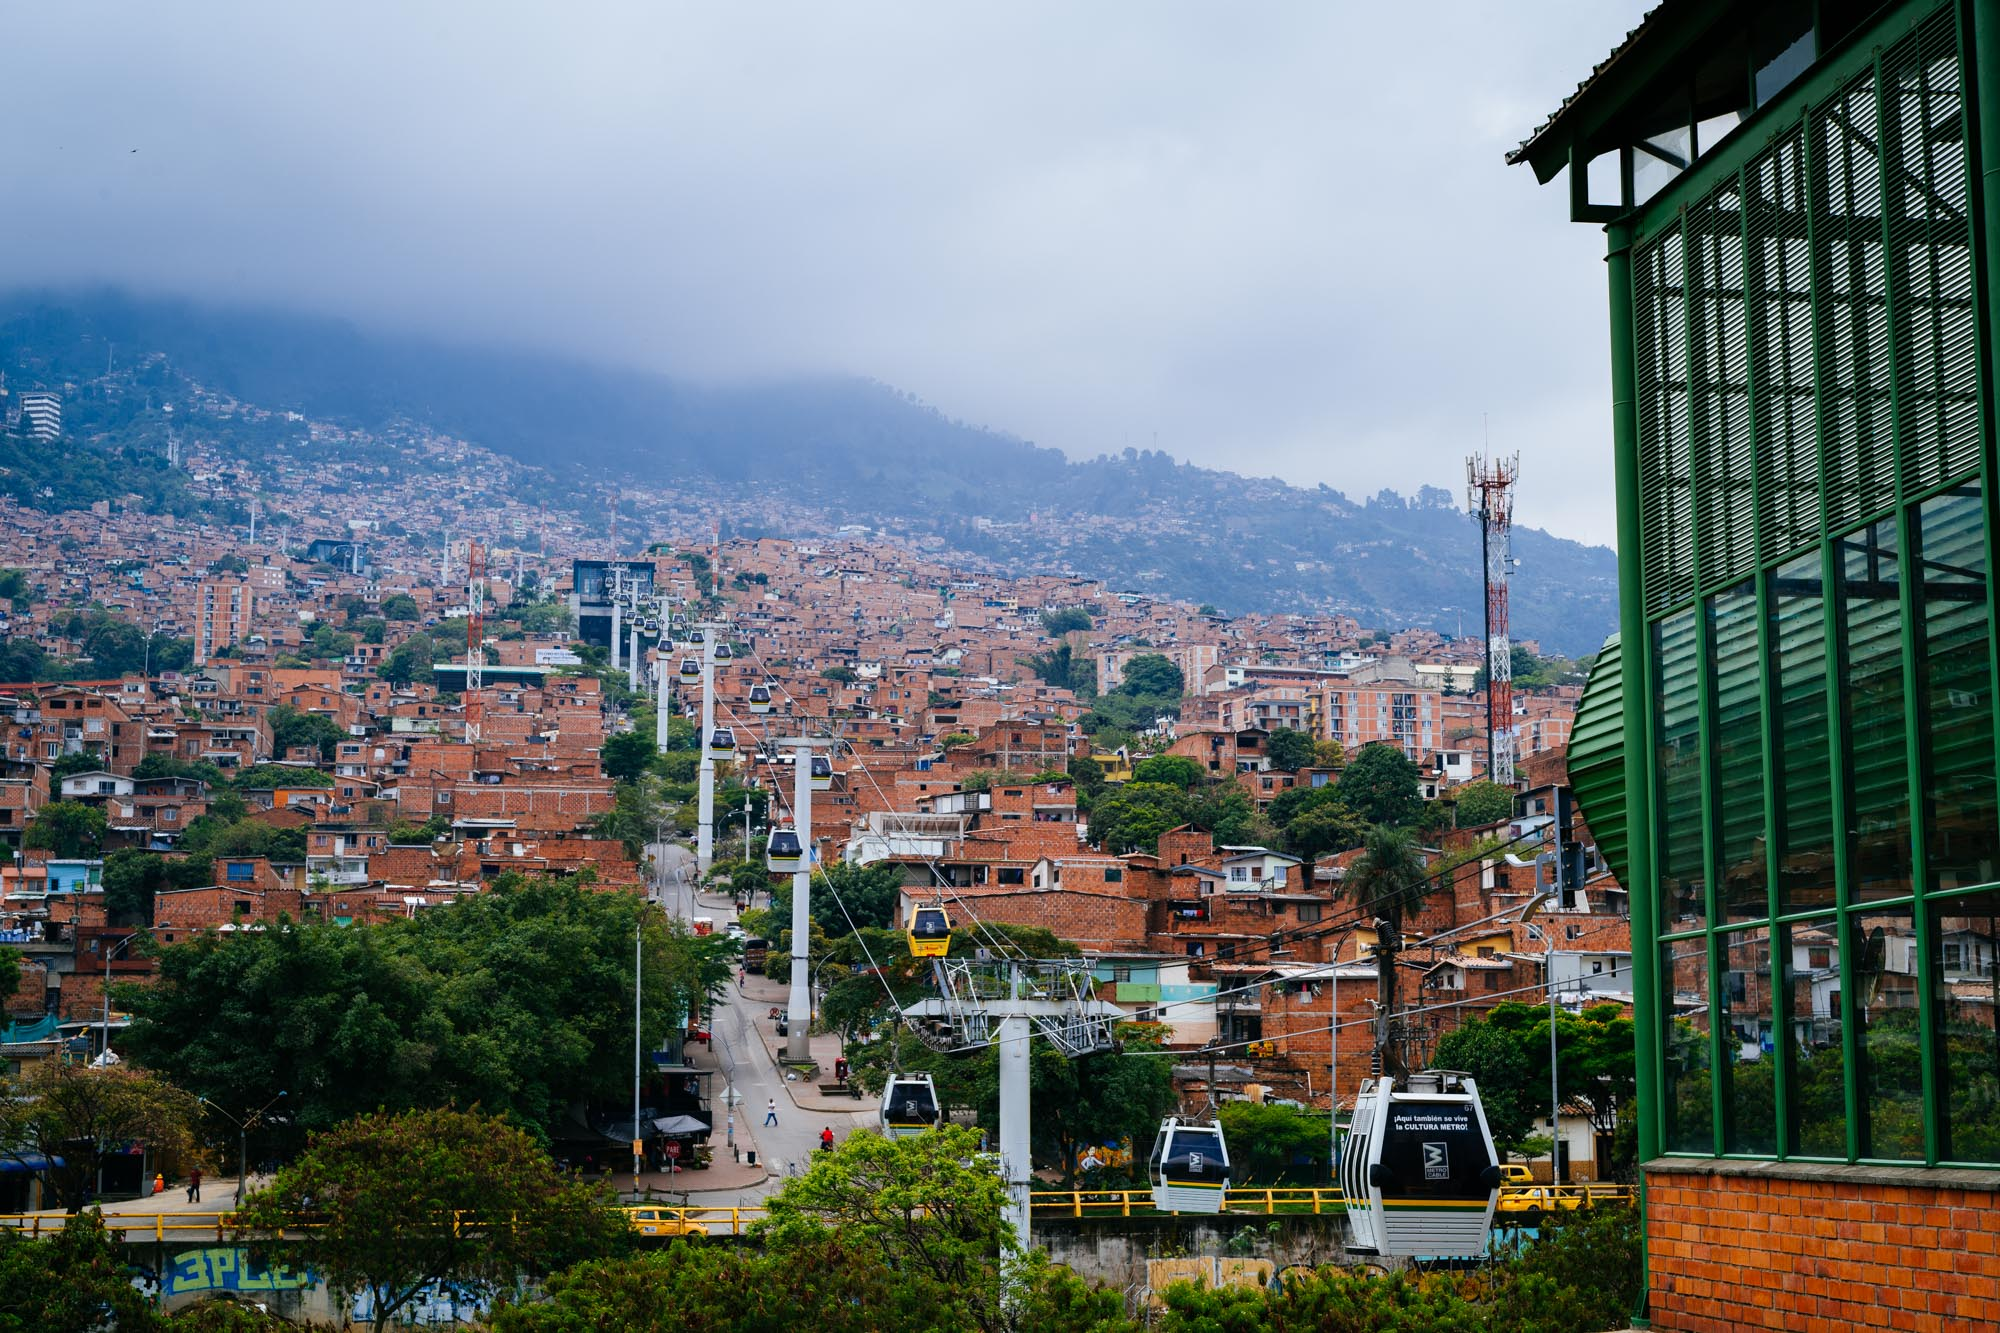 to-be-determined-photo-rhetoric-cycling-in-colombia-1055.jpg